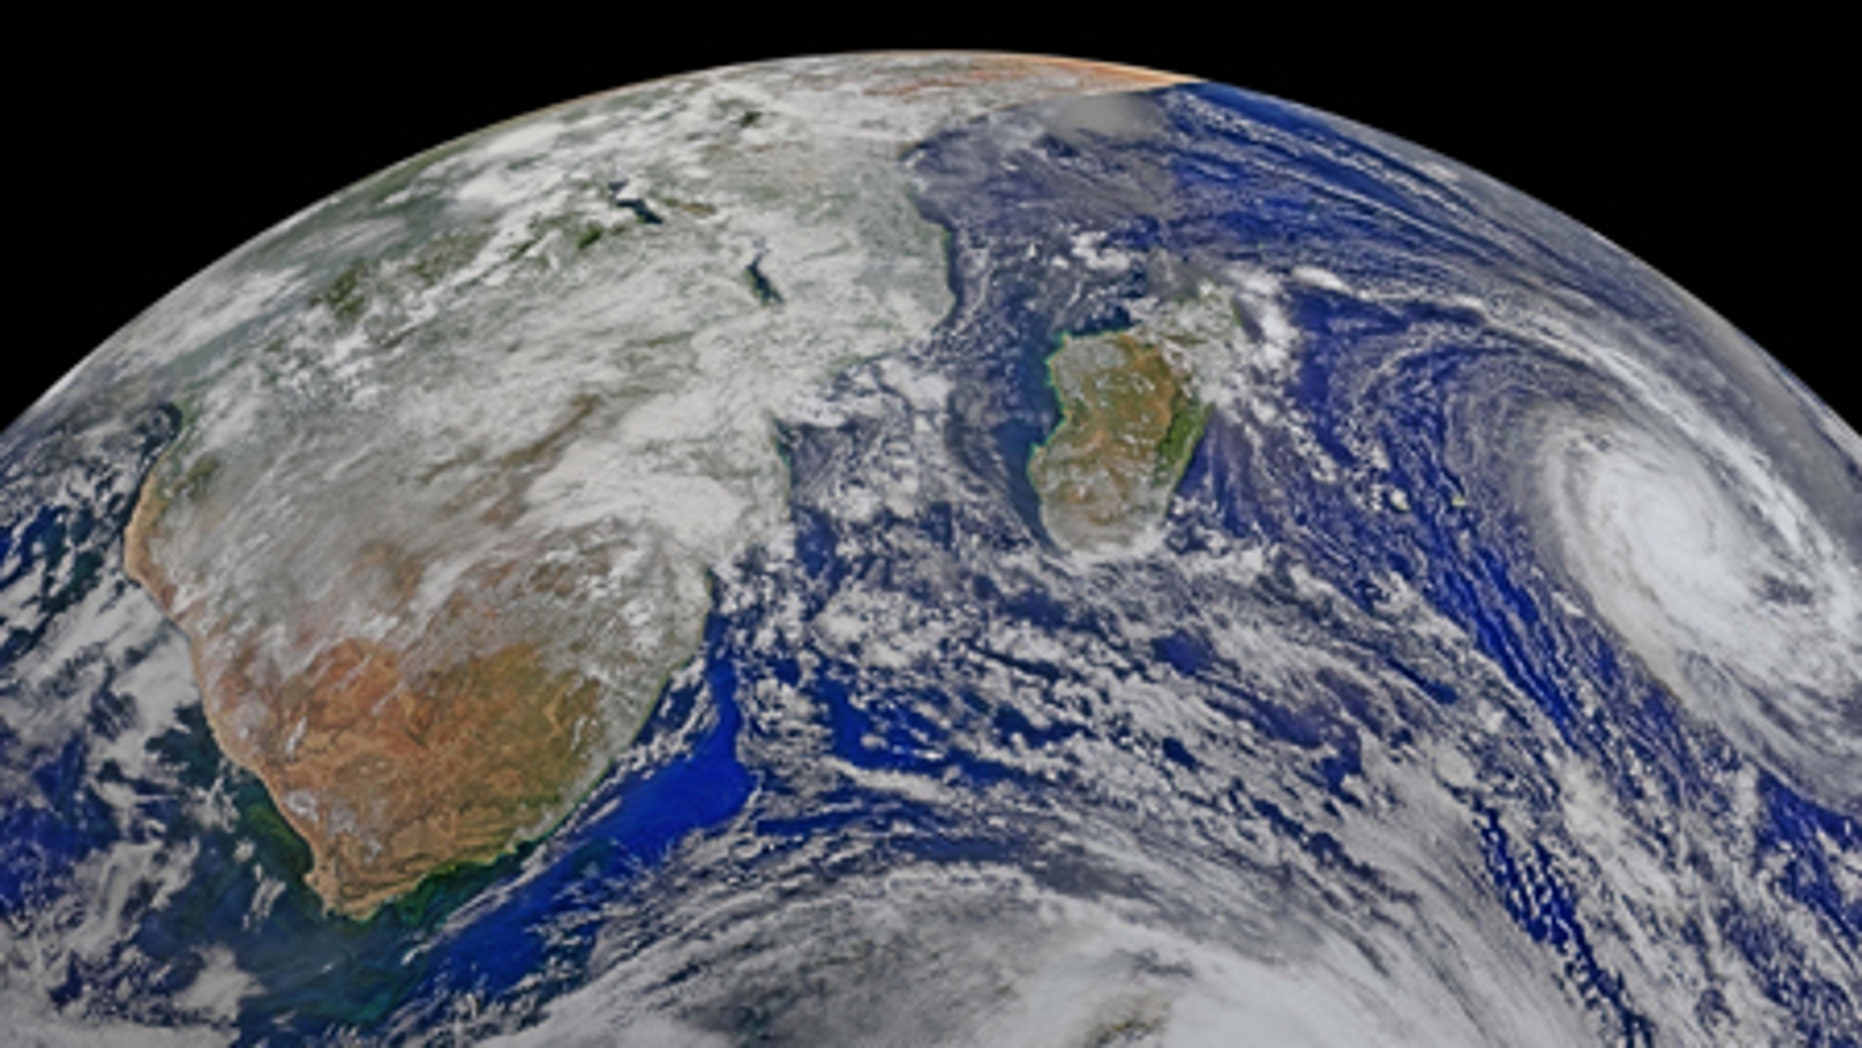 April 9, 2015: This image provided by NASA Data from six orbits of the Suomi-NPP spacecraft on have been assembled into this perspective composite of southern Africa and the surrounding oceans. Tropical Cyclone Joalane is seen over the Indian Ocean. The image was created by the Ocean Biology Processing Group at NASA's Goddard Space Flight Center in Greenbelt, Maryland.